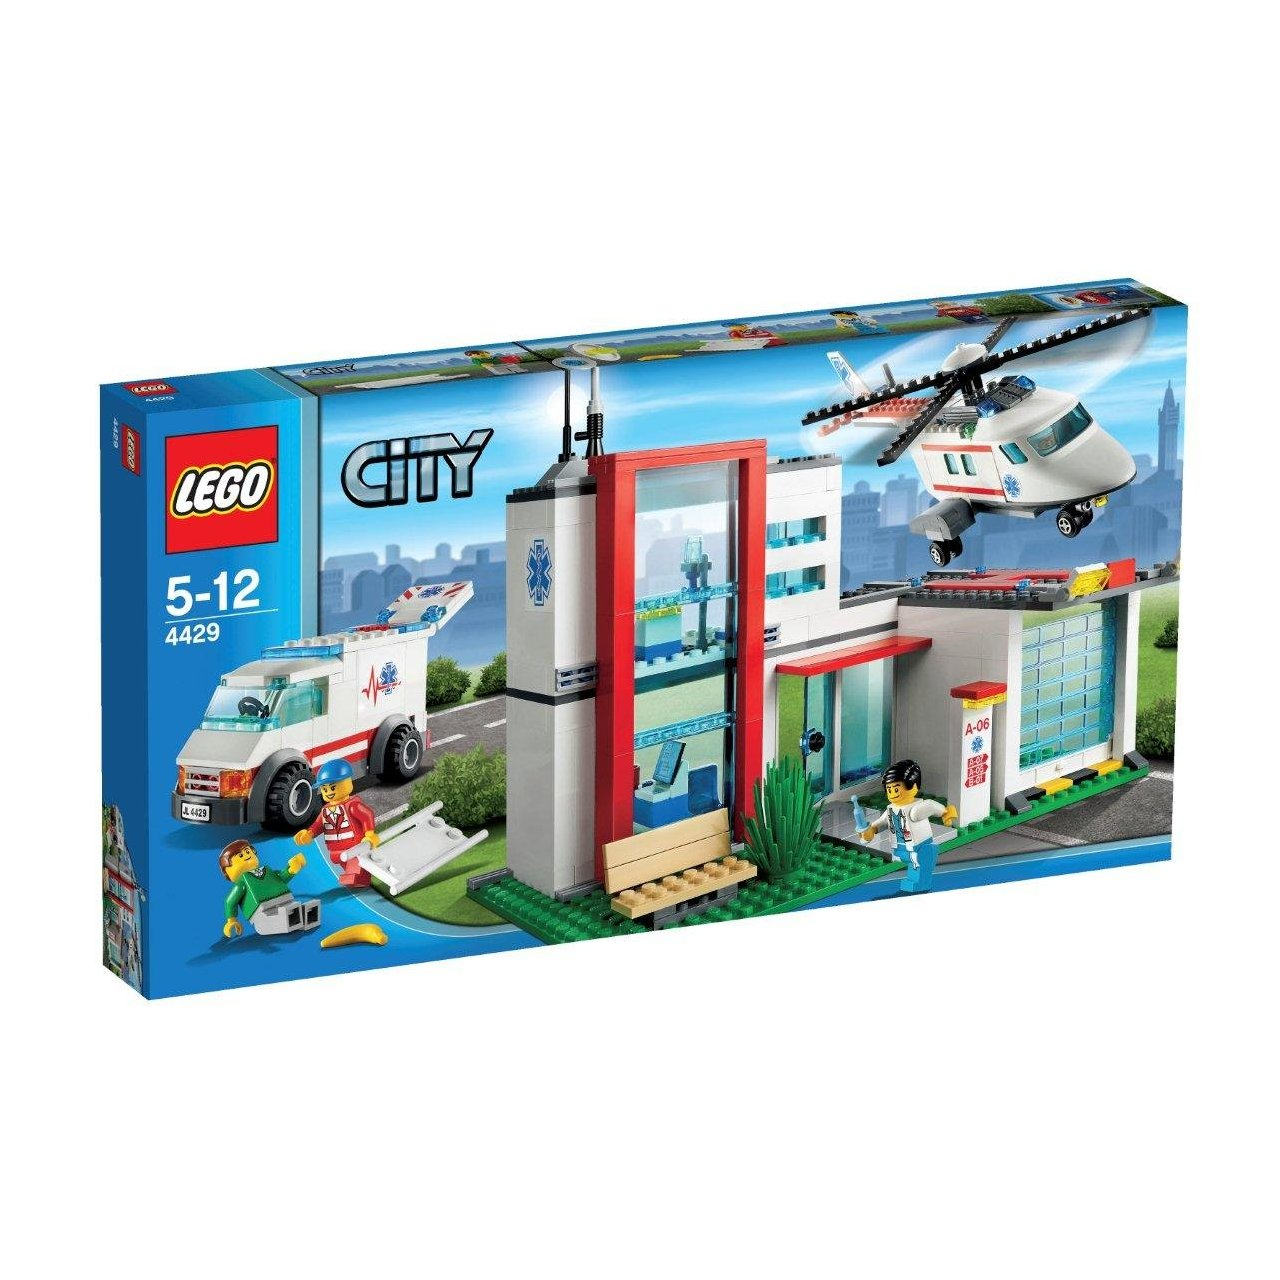 ambulance helicopter games with 4429 Helicopter Rescue on Set Database Lego 7892 Hospital additionally Robocar Poli Coloring Pages besides Transportation Flashcards also Cupcake my baby birthday shirt dad 235017537008517649 likewise 4429 Helicopter Rescue.